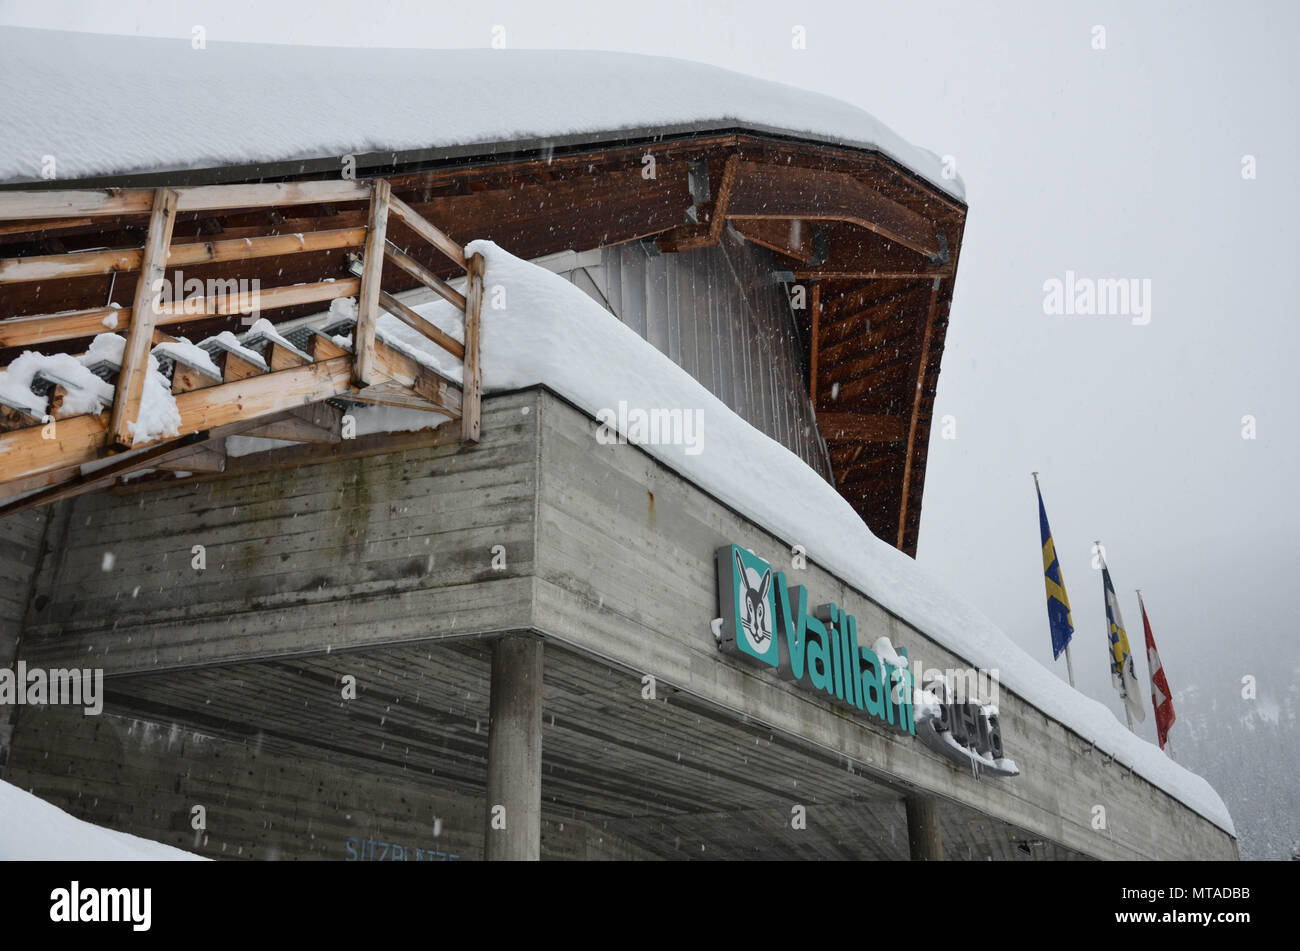 Vaillant Arena, home of HC Davos ice hockey club, Davos, host town of the World Economic Forum, Switzerland, January 2018 - Stock Image